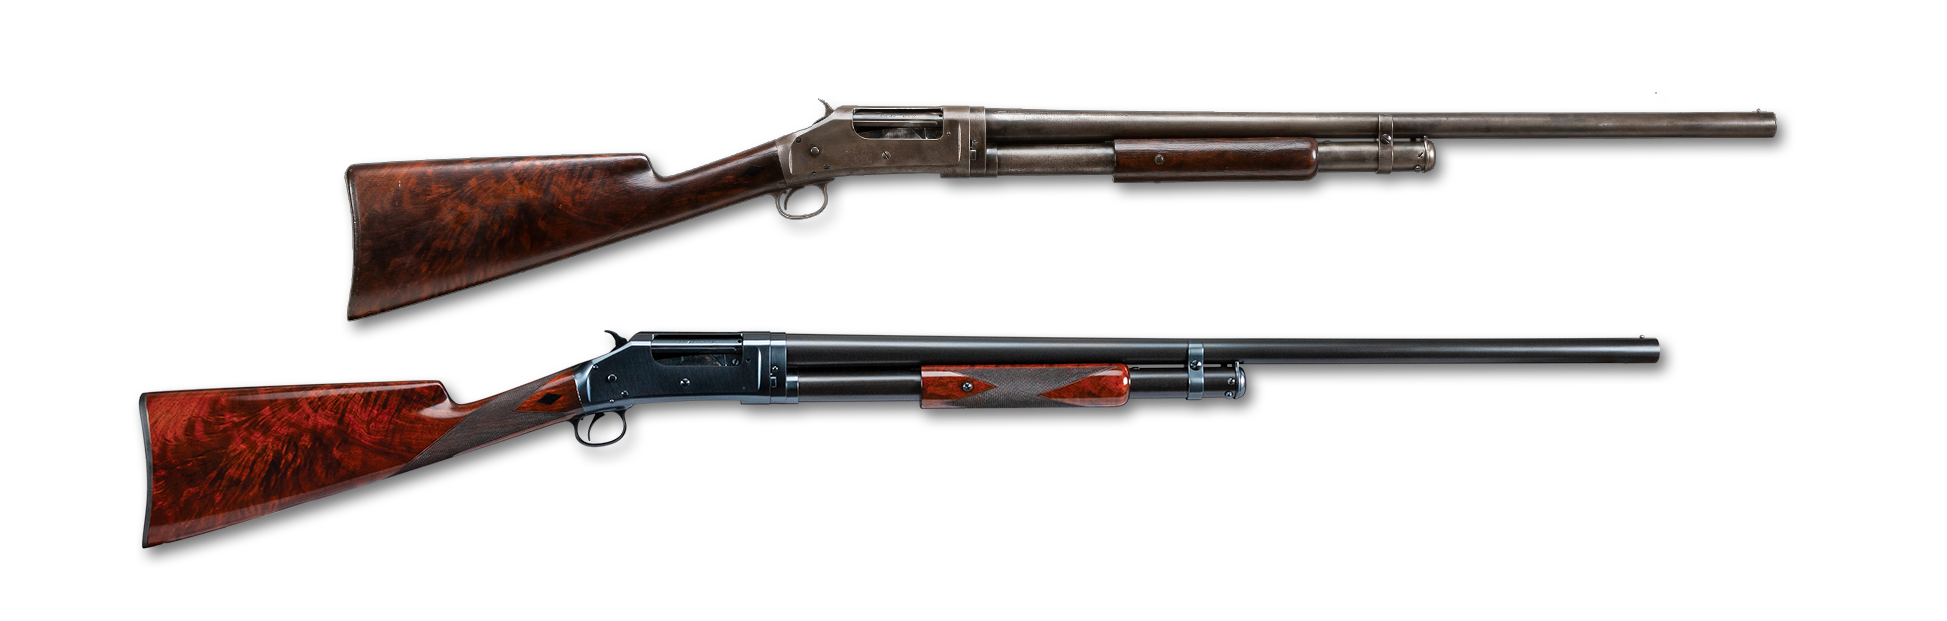 Photo of a restored Winchester Model 1897 shotgun, before and after restoration work by Turnbull Restoration of Bloomfield NY